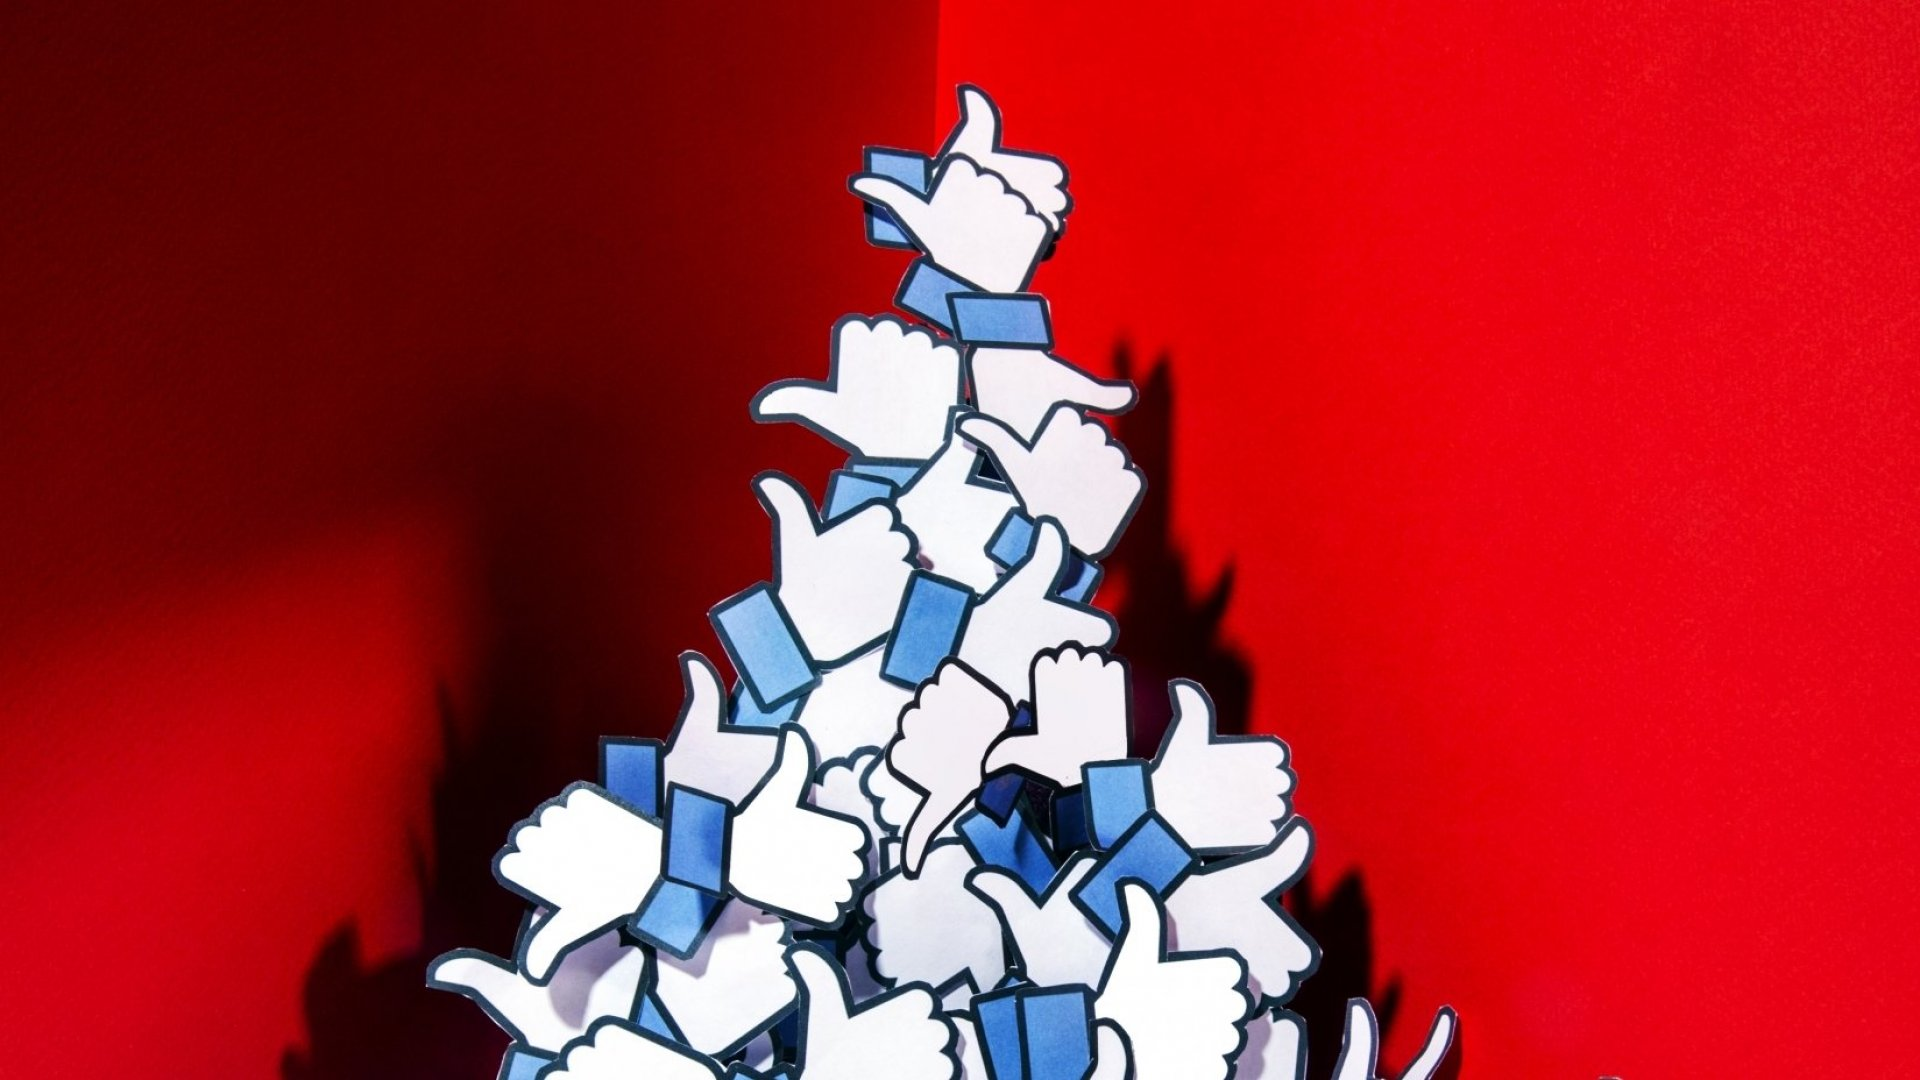 3 Important Lessons From Facebook's Deepening PR Crisis